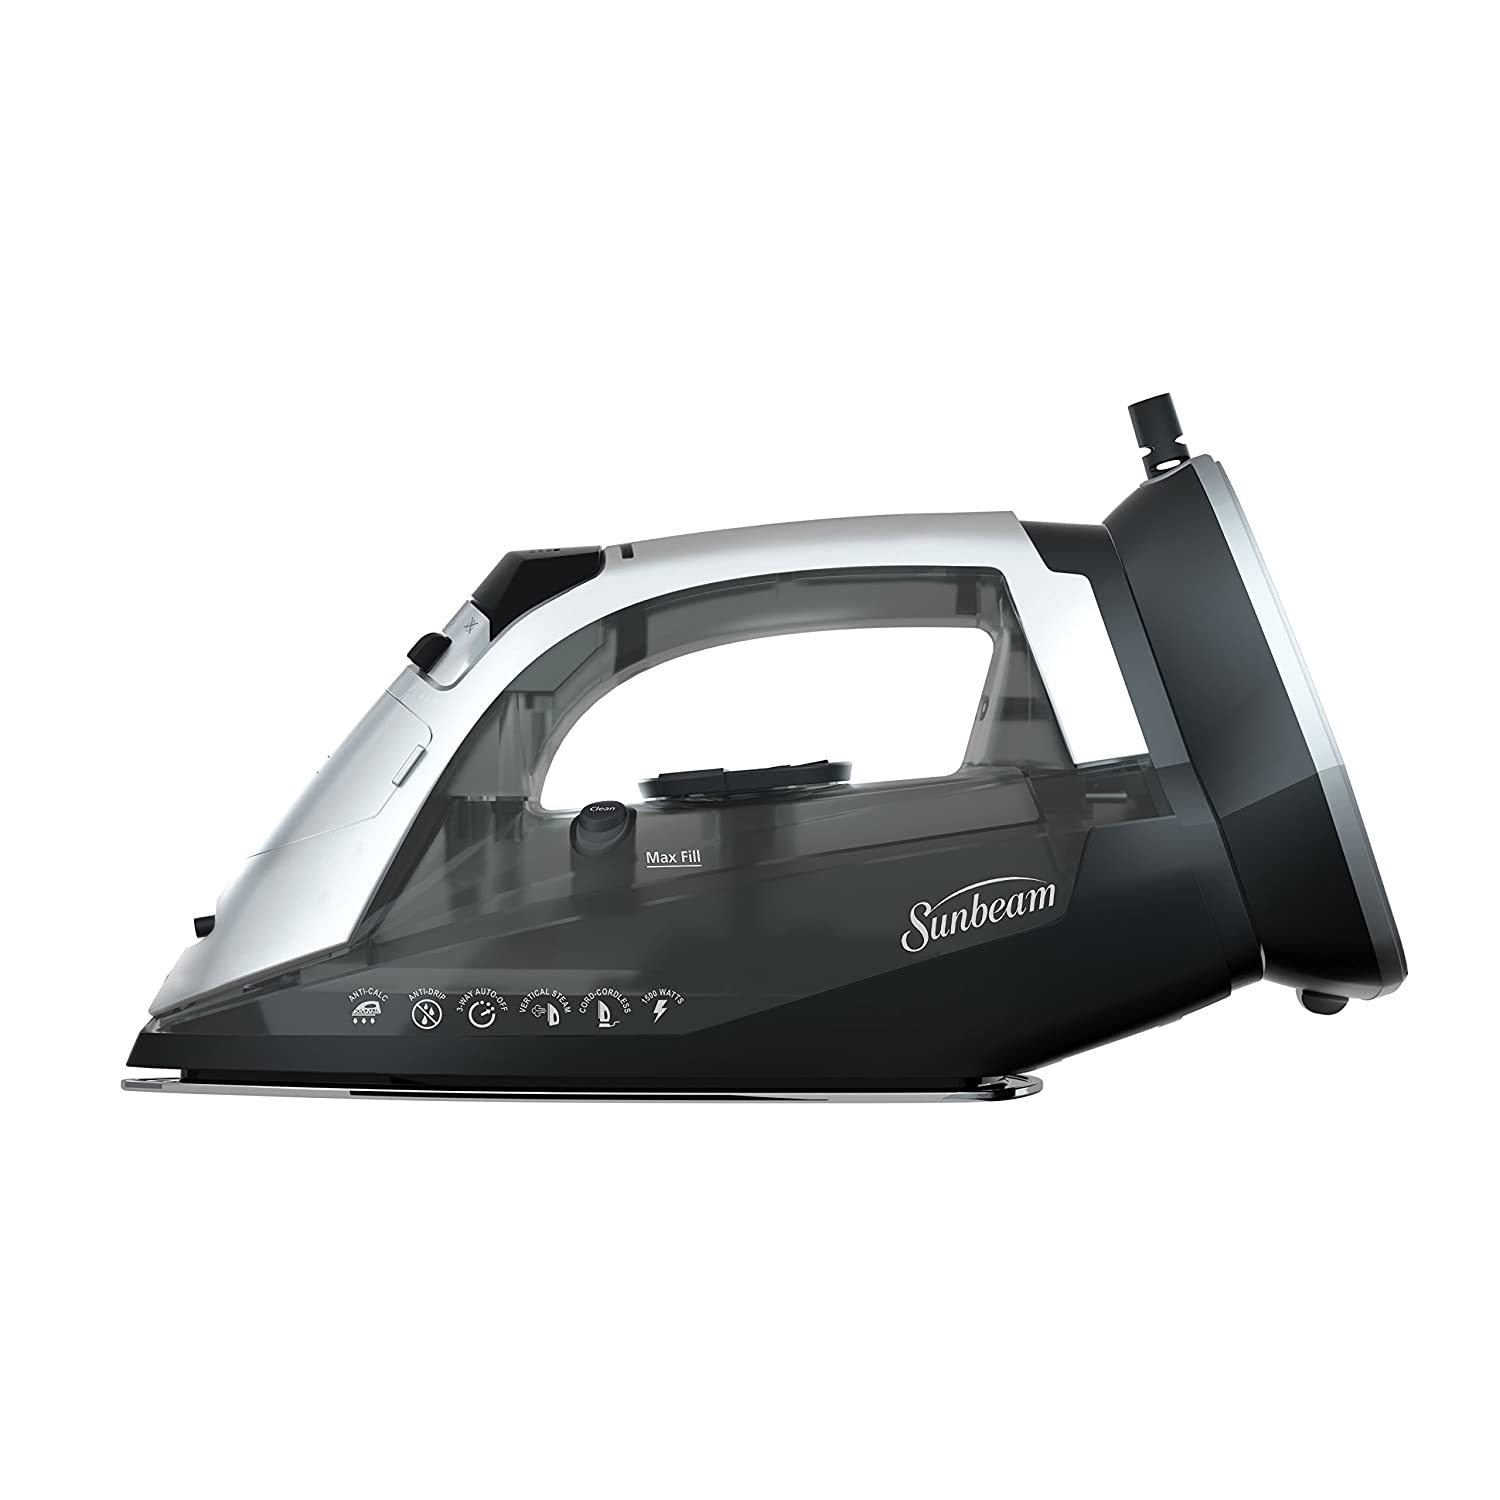 Sunbeam (GCSBNC-101-000 Versa Glide Cordless/Corded Iron, Black